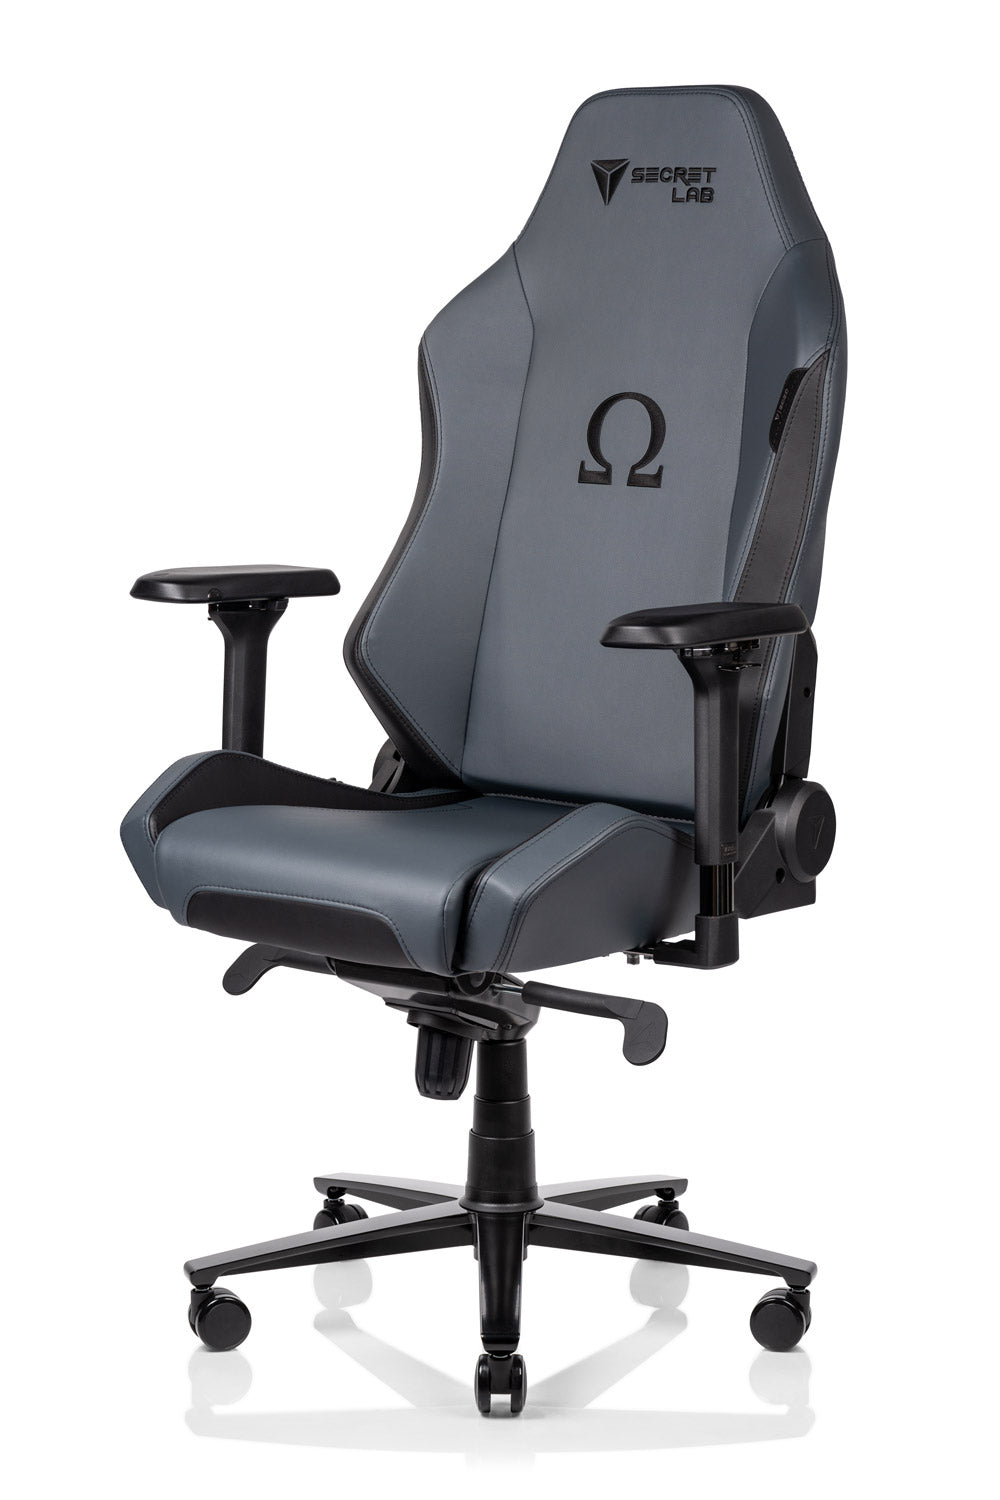 Best High Chairs 2020 OMEGA Series gaming chairs | Secretlab US